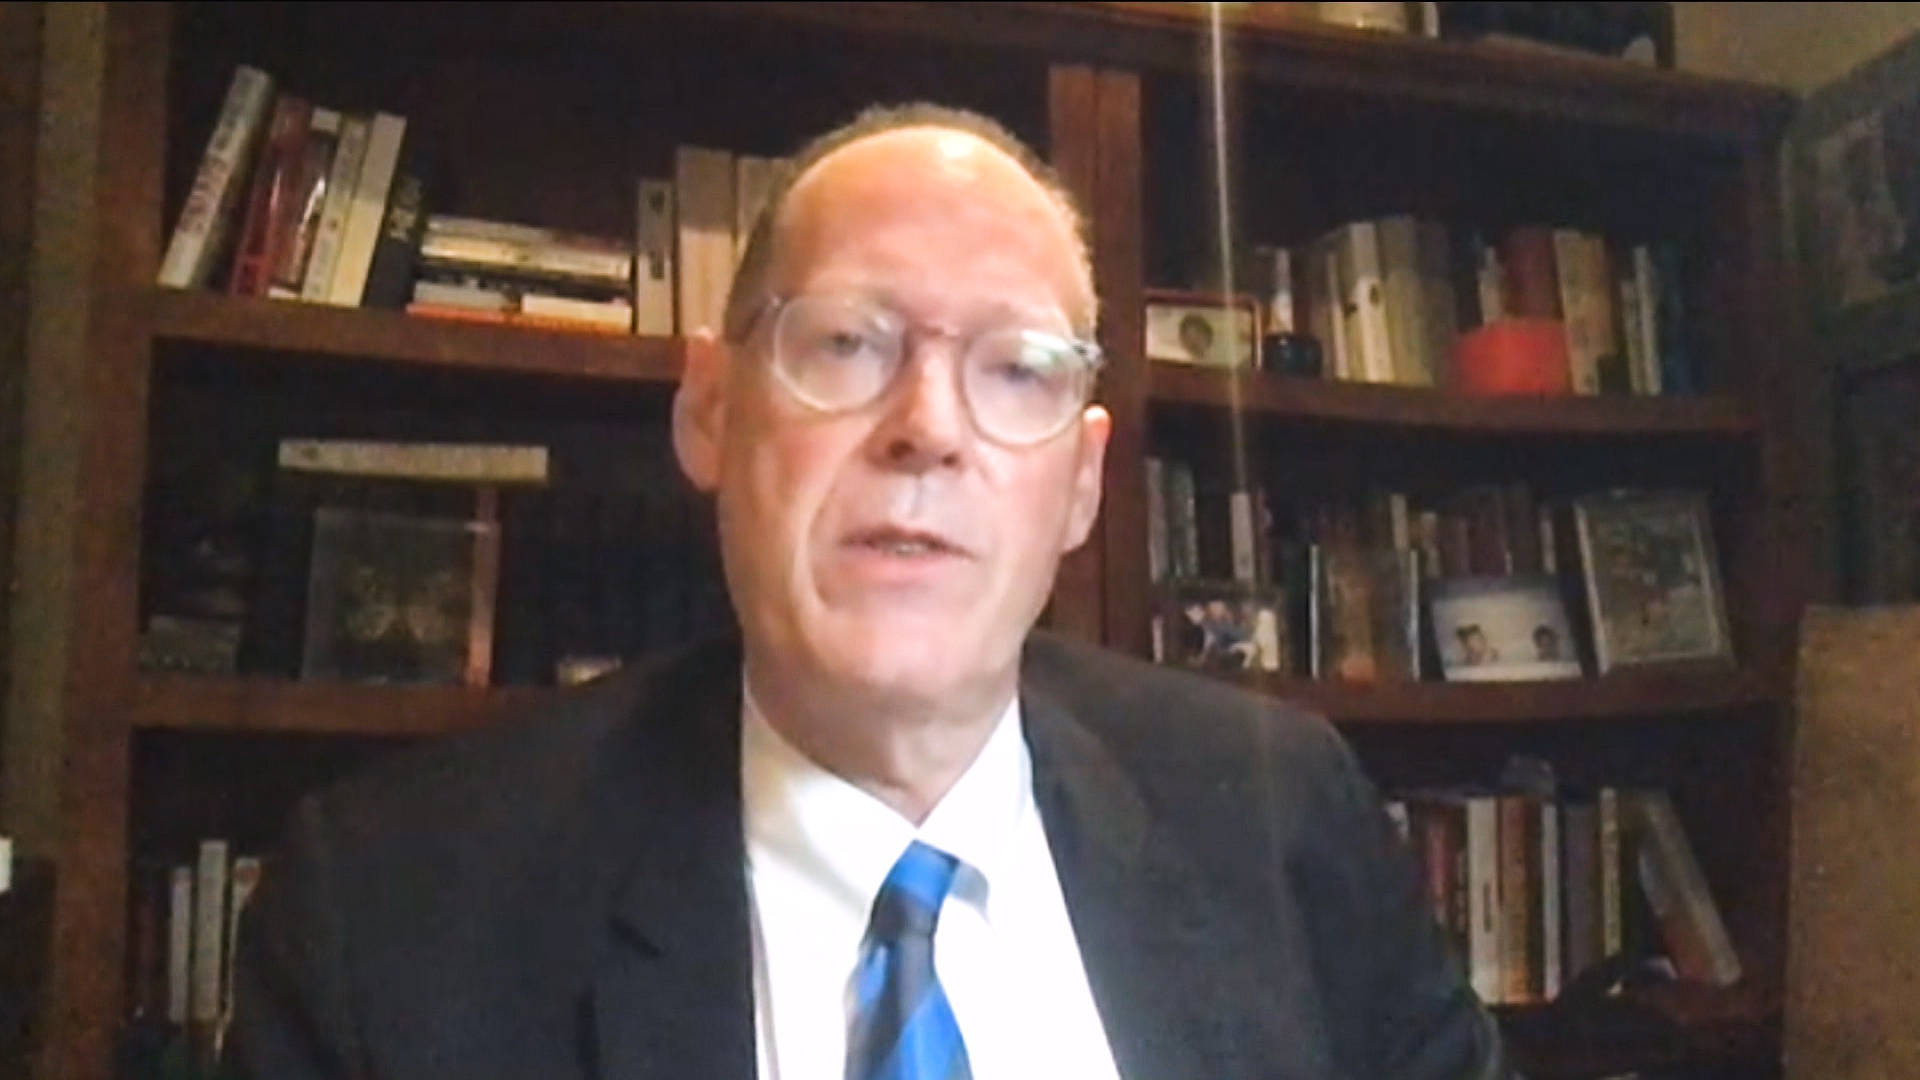 Dr. Paul Farmer: Centuries of Inequality in the U.S. Laid Groundwork for Pandemic Devastation